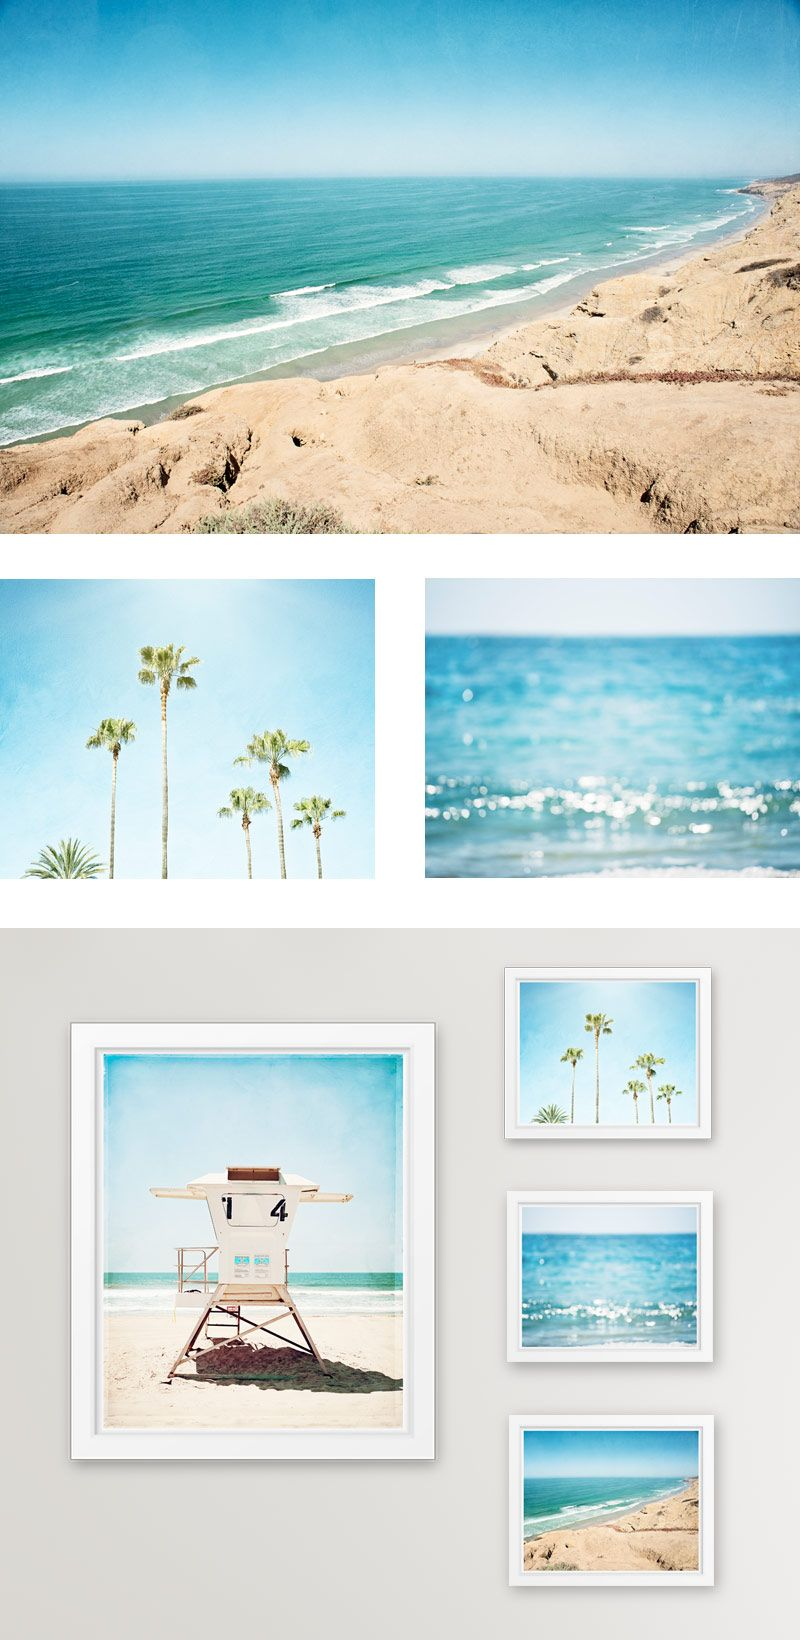 California Beach Photography With Images California Beaches